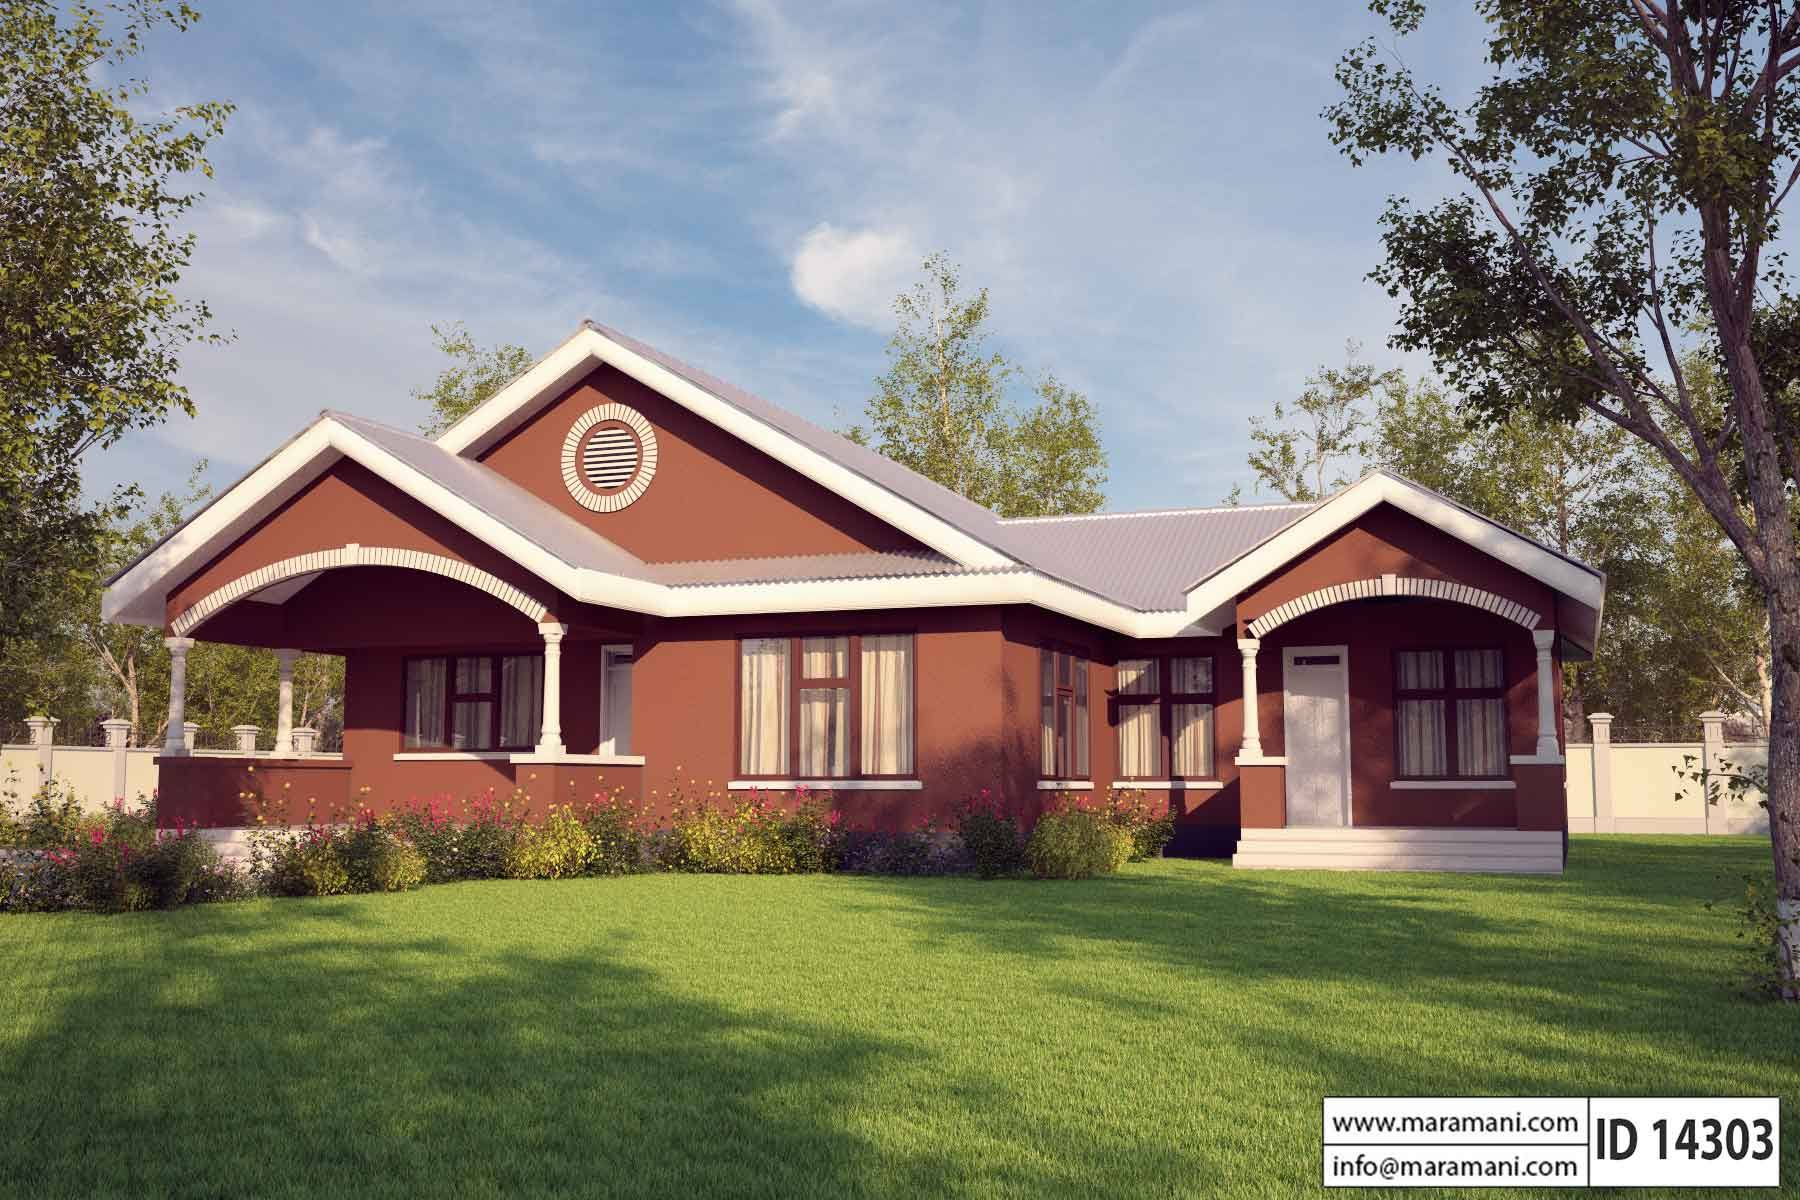 4 Bedroom House Plan Id 14303 House Plans By Maramani